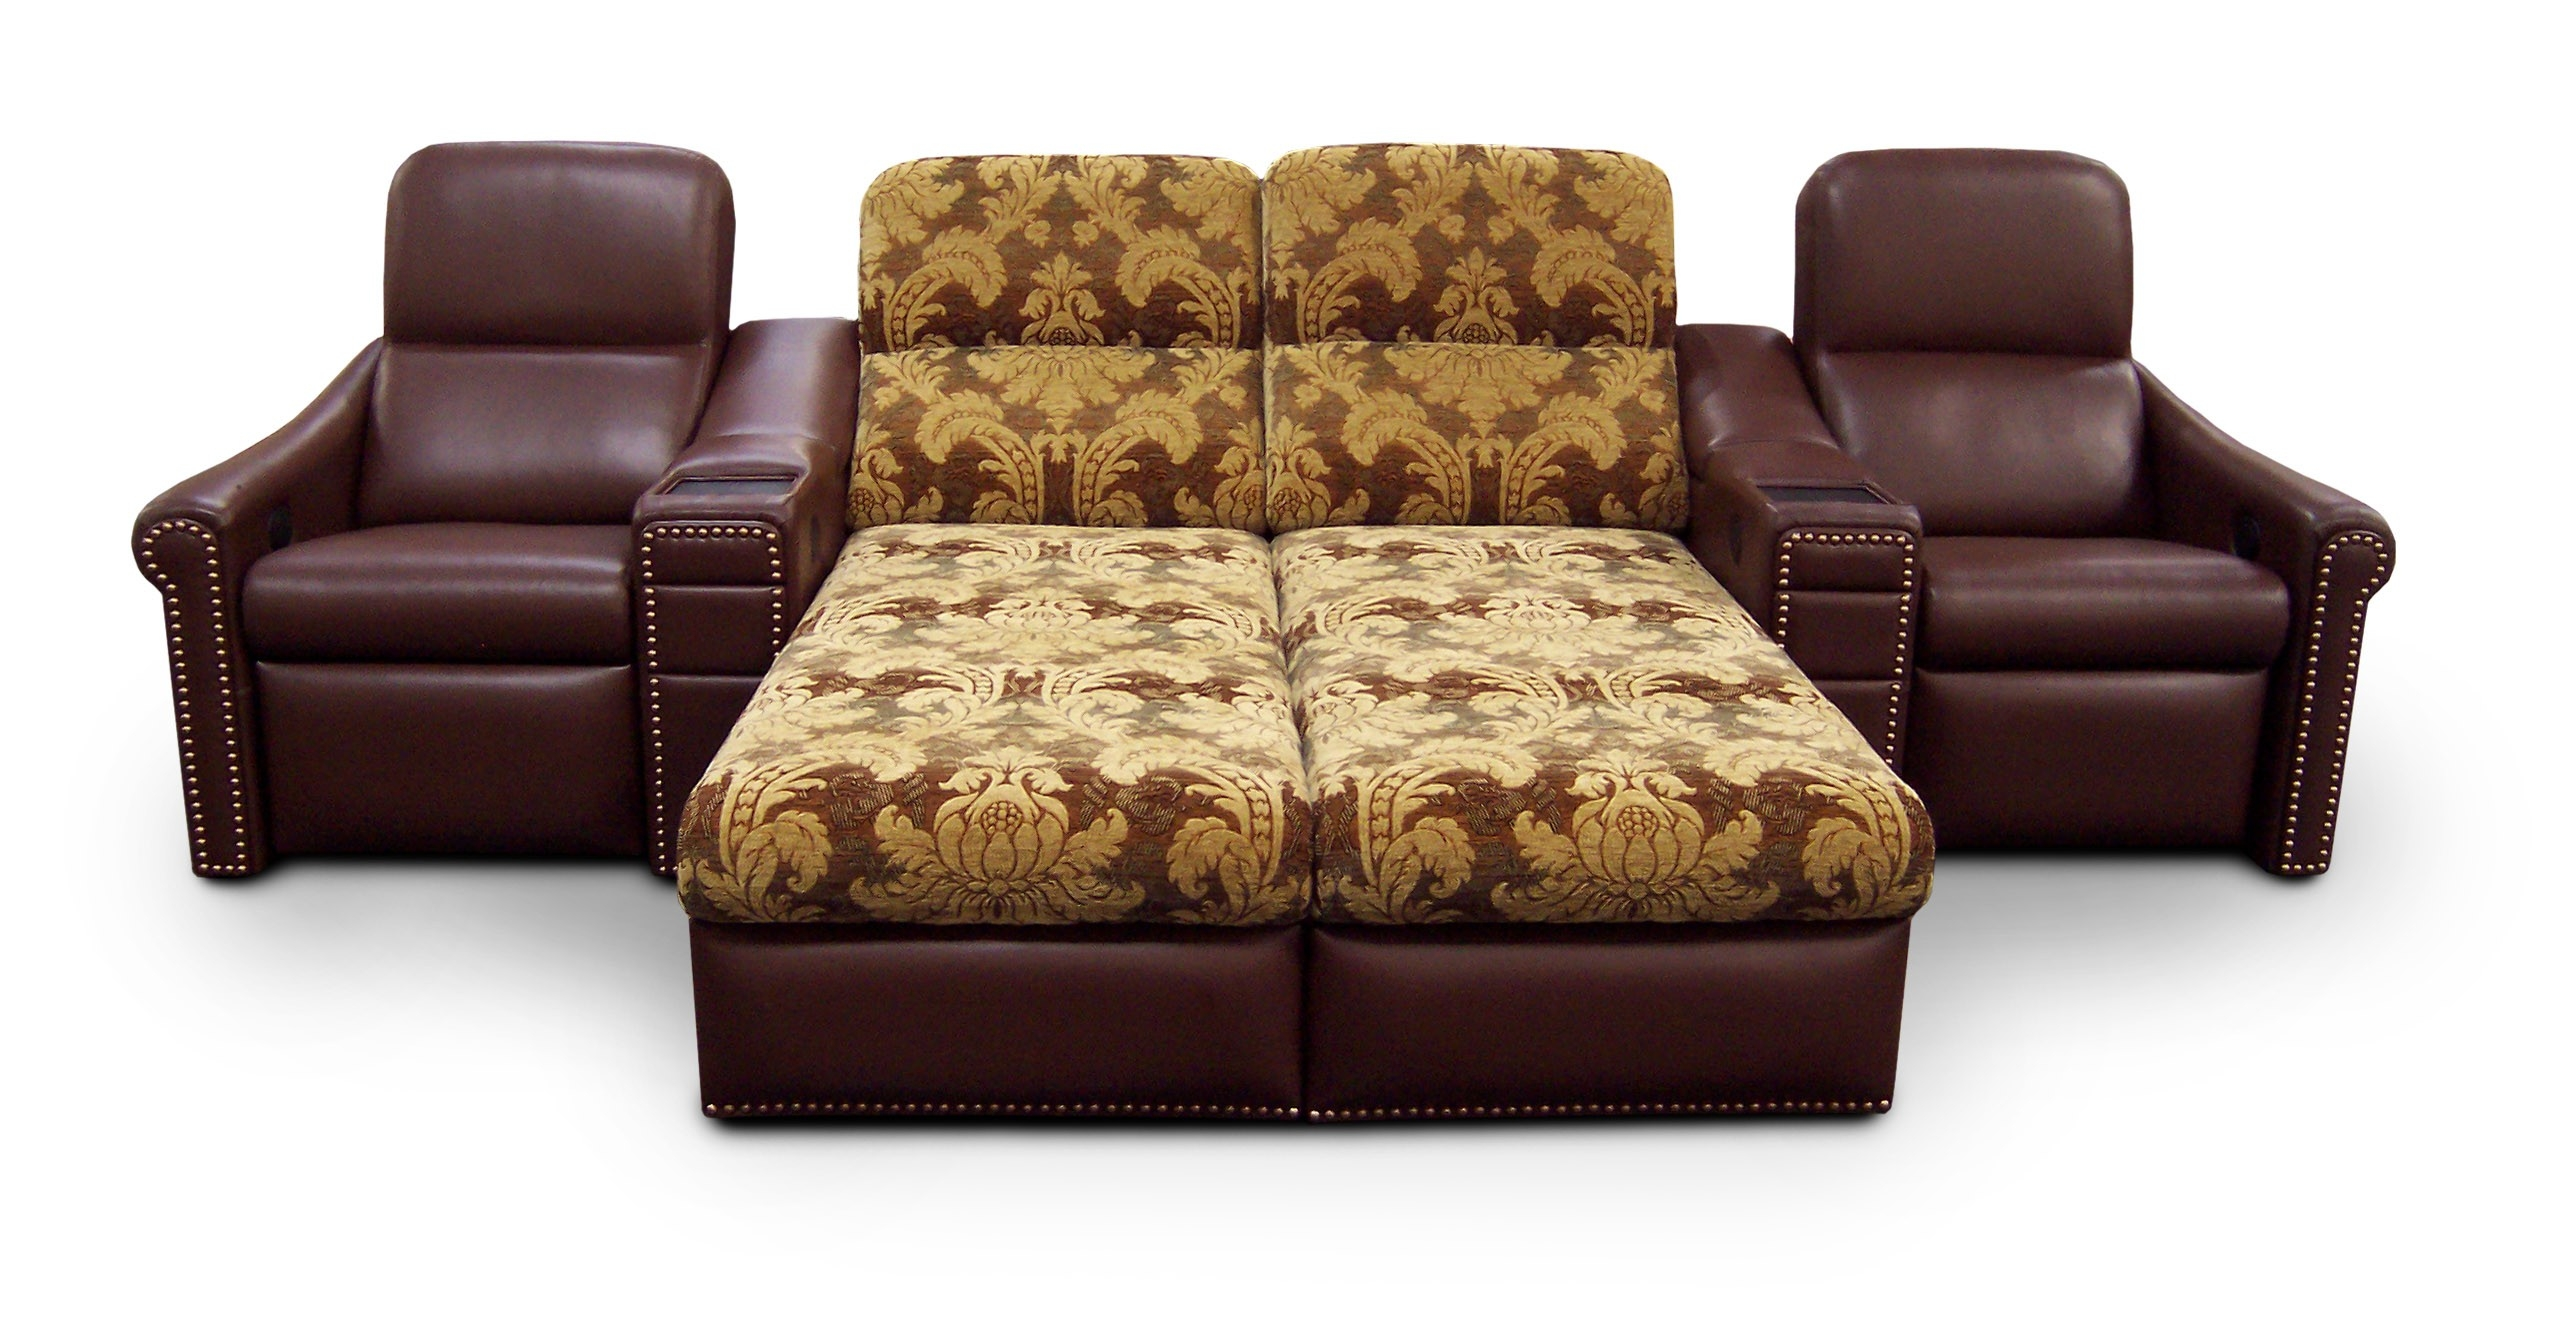 Sofas Center Double Chaise Lounge Sofa Chair Sectional Indoor For Chaise Sofa Chairs (Image 13 of 15)